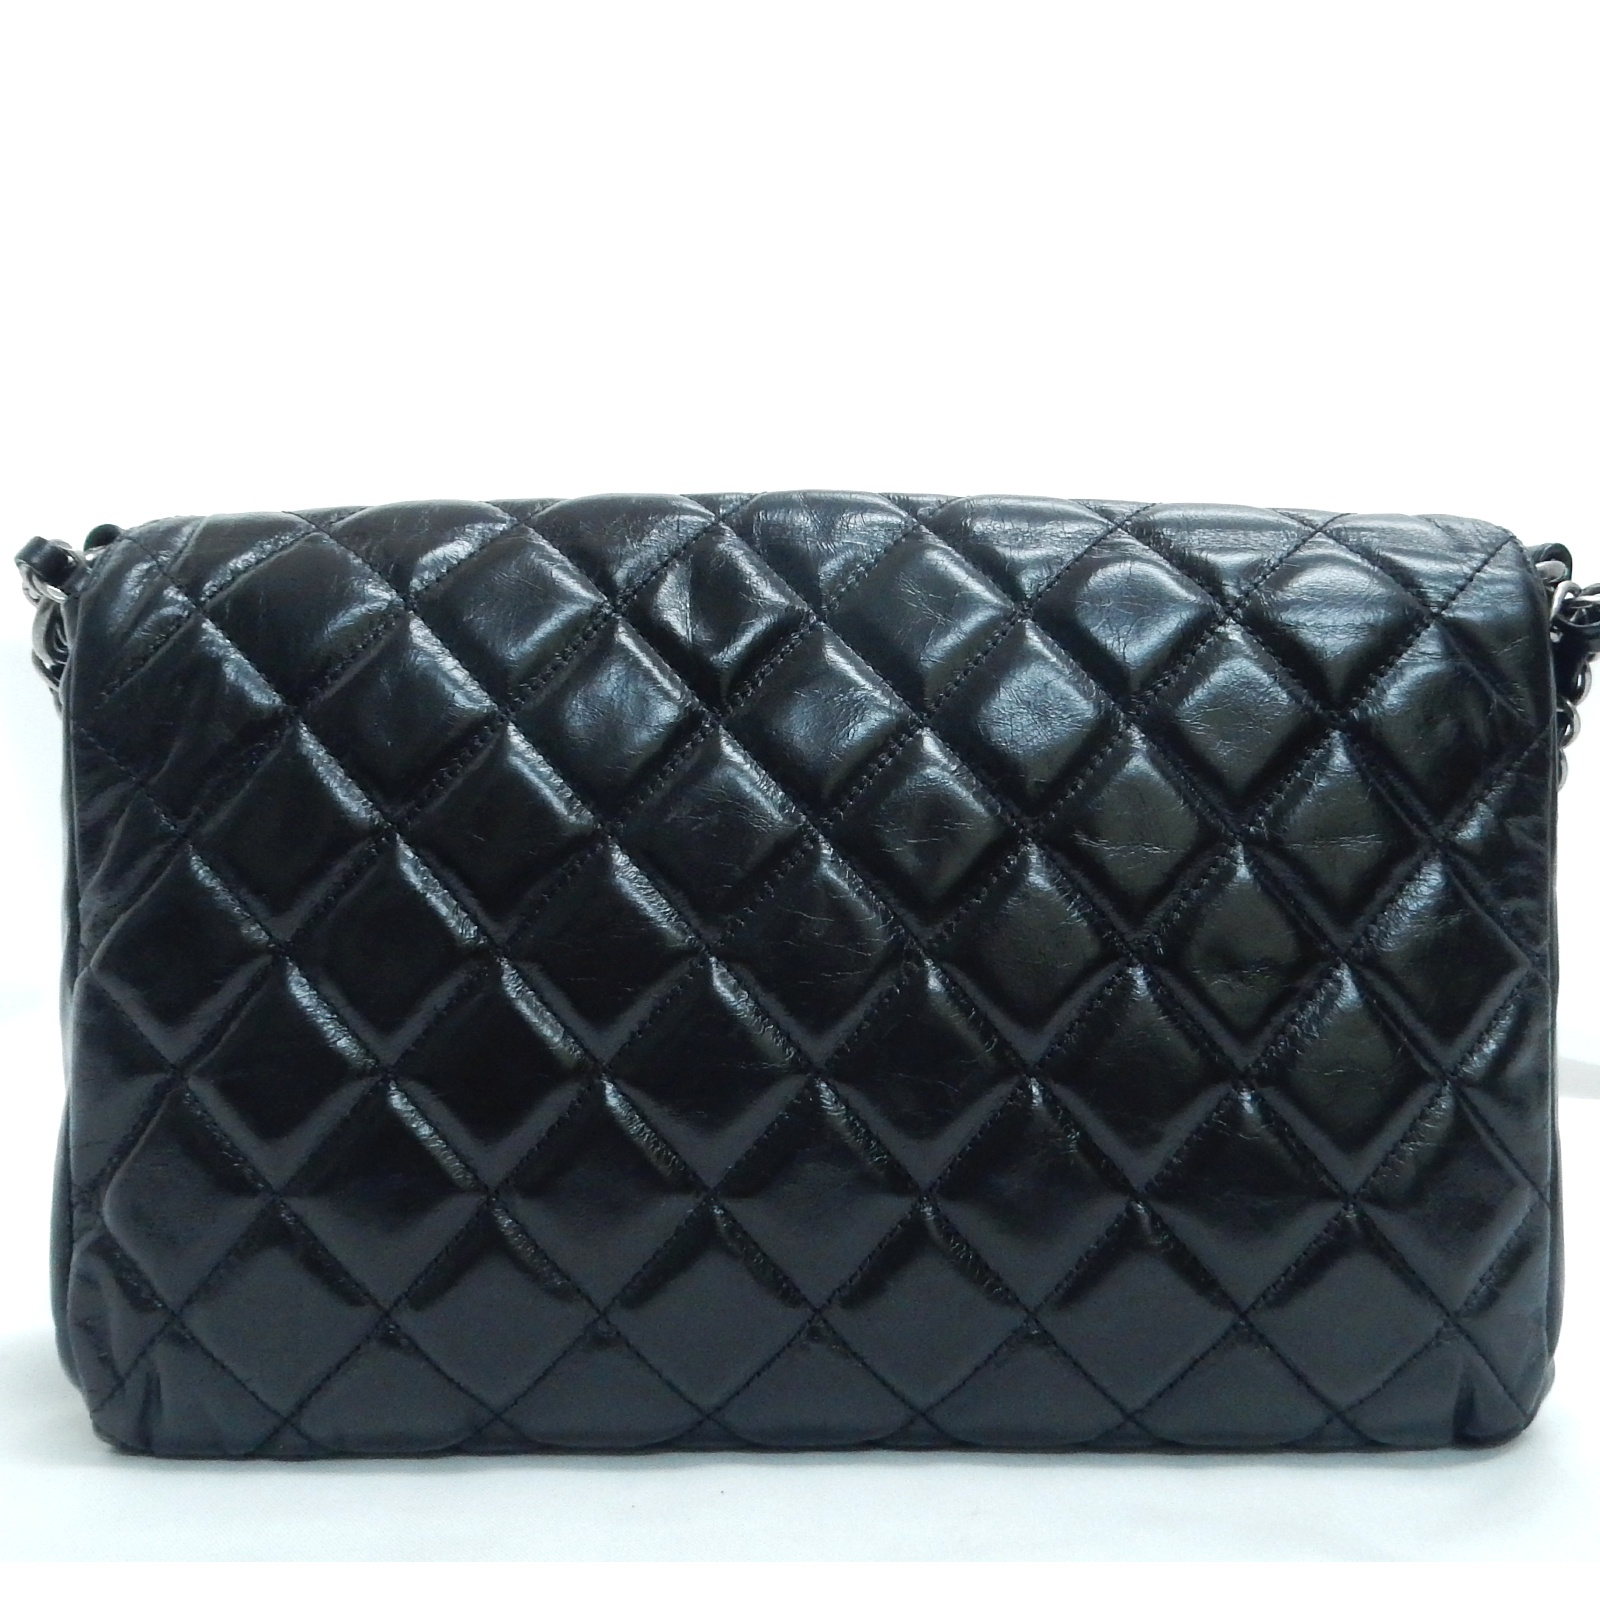 3f349899e6d2 Rise-on CHANEL Metalic Quilted Leather Black Flap Chain Shoulder Bag ...